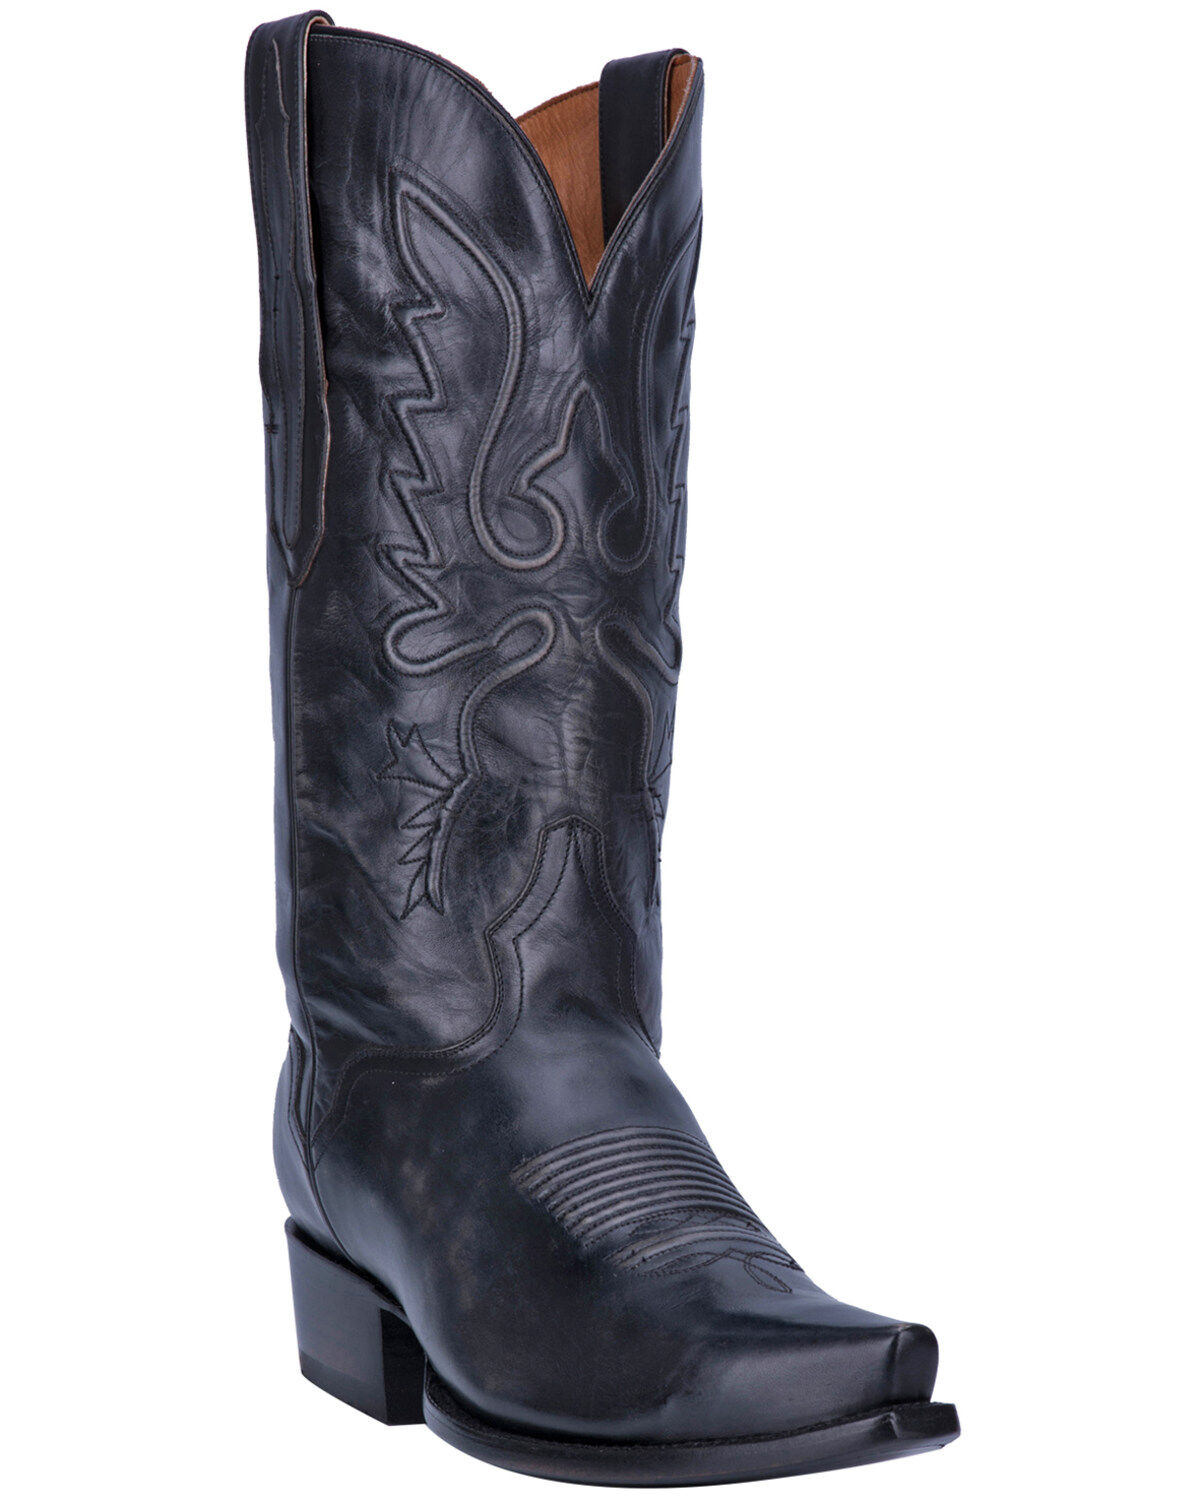 mens boots on sale near me